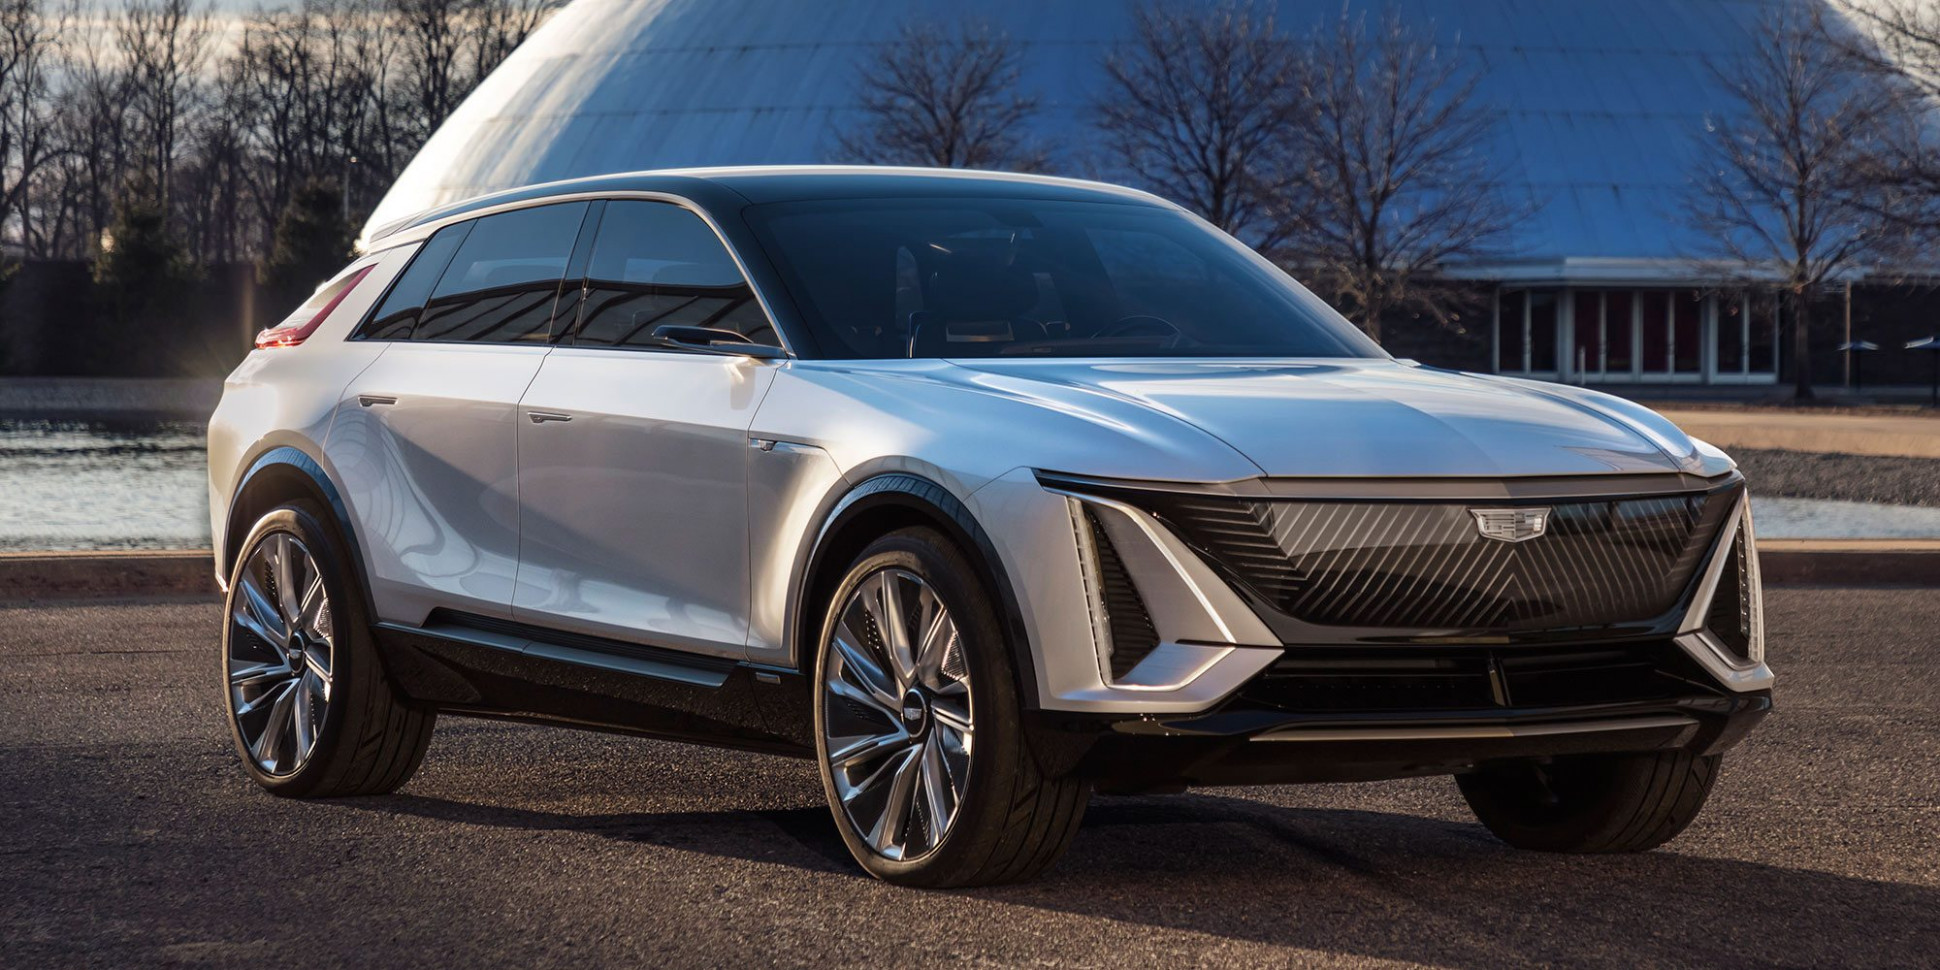 Engine When Will The 2022 Cadillac Xt5 Be Available